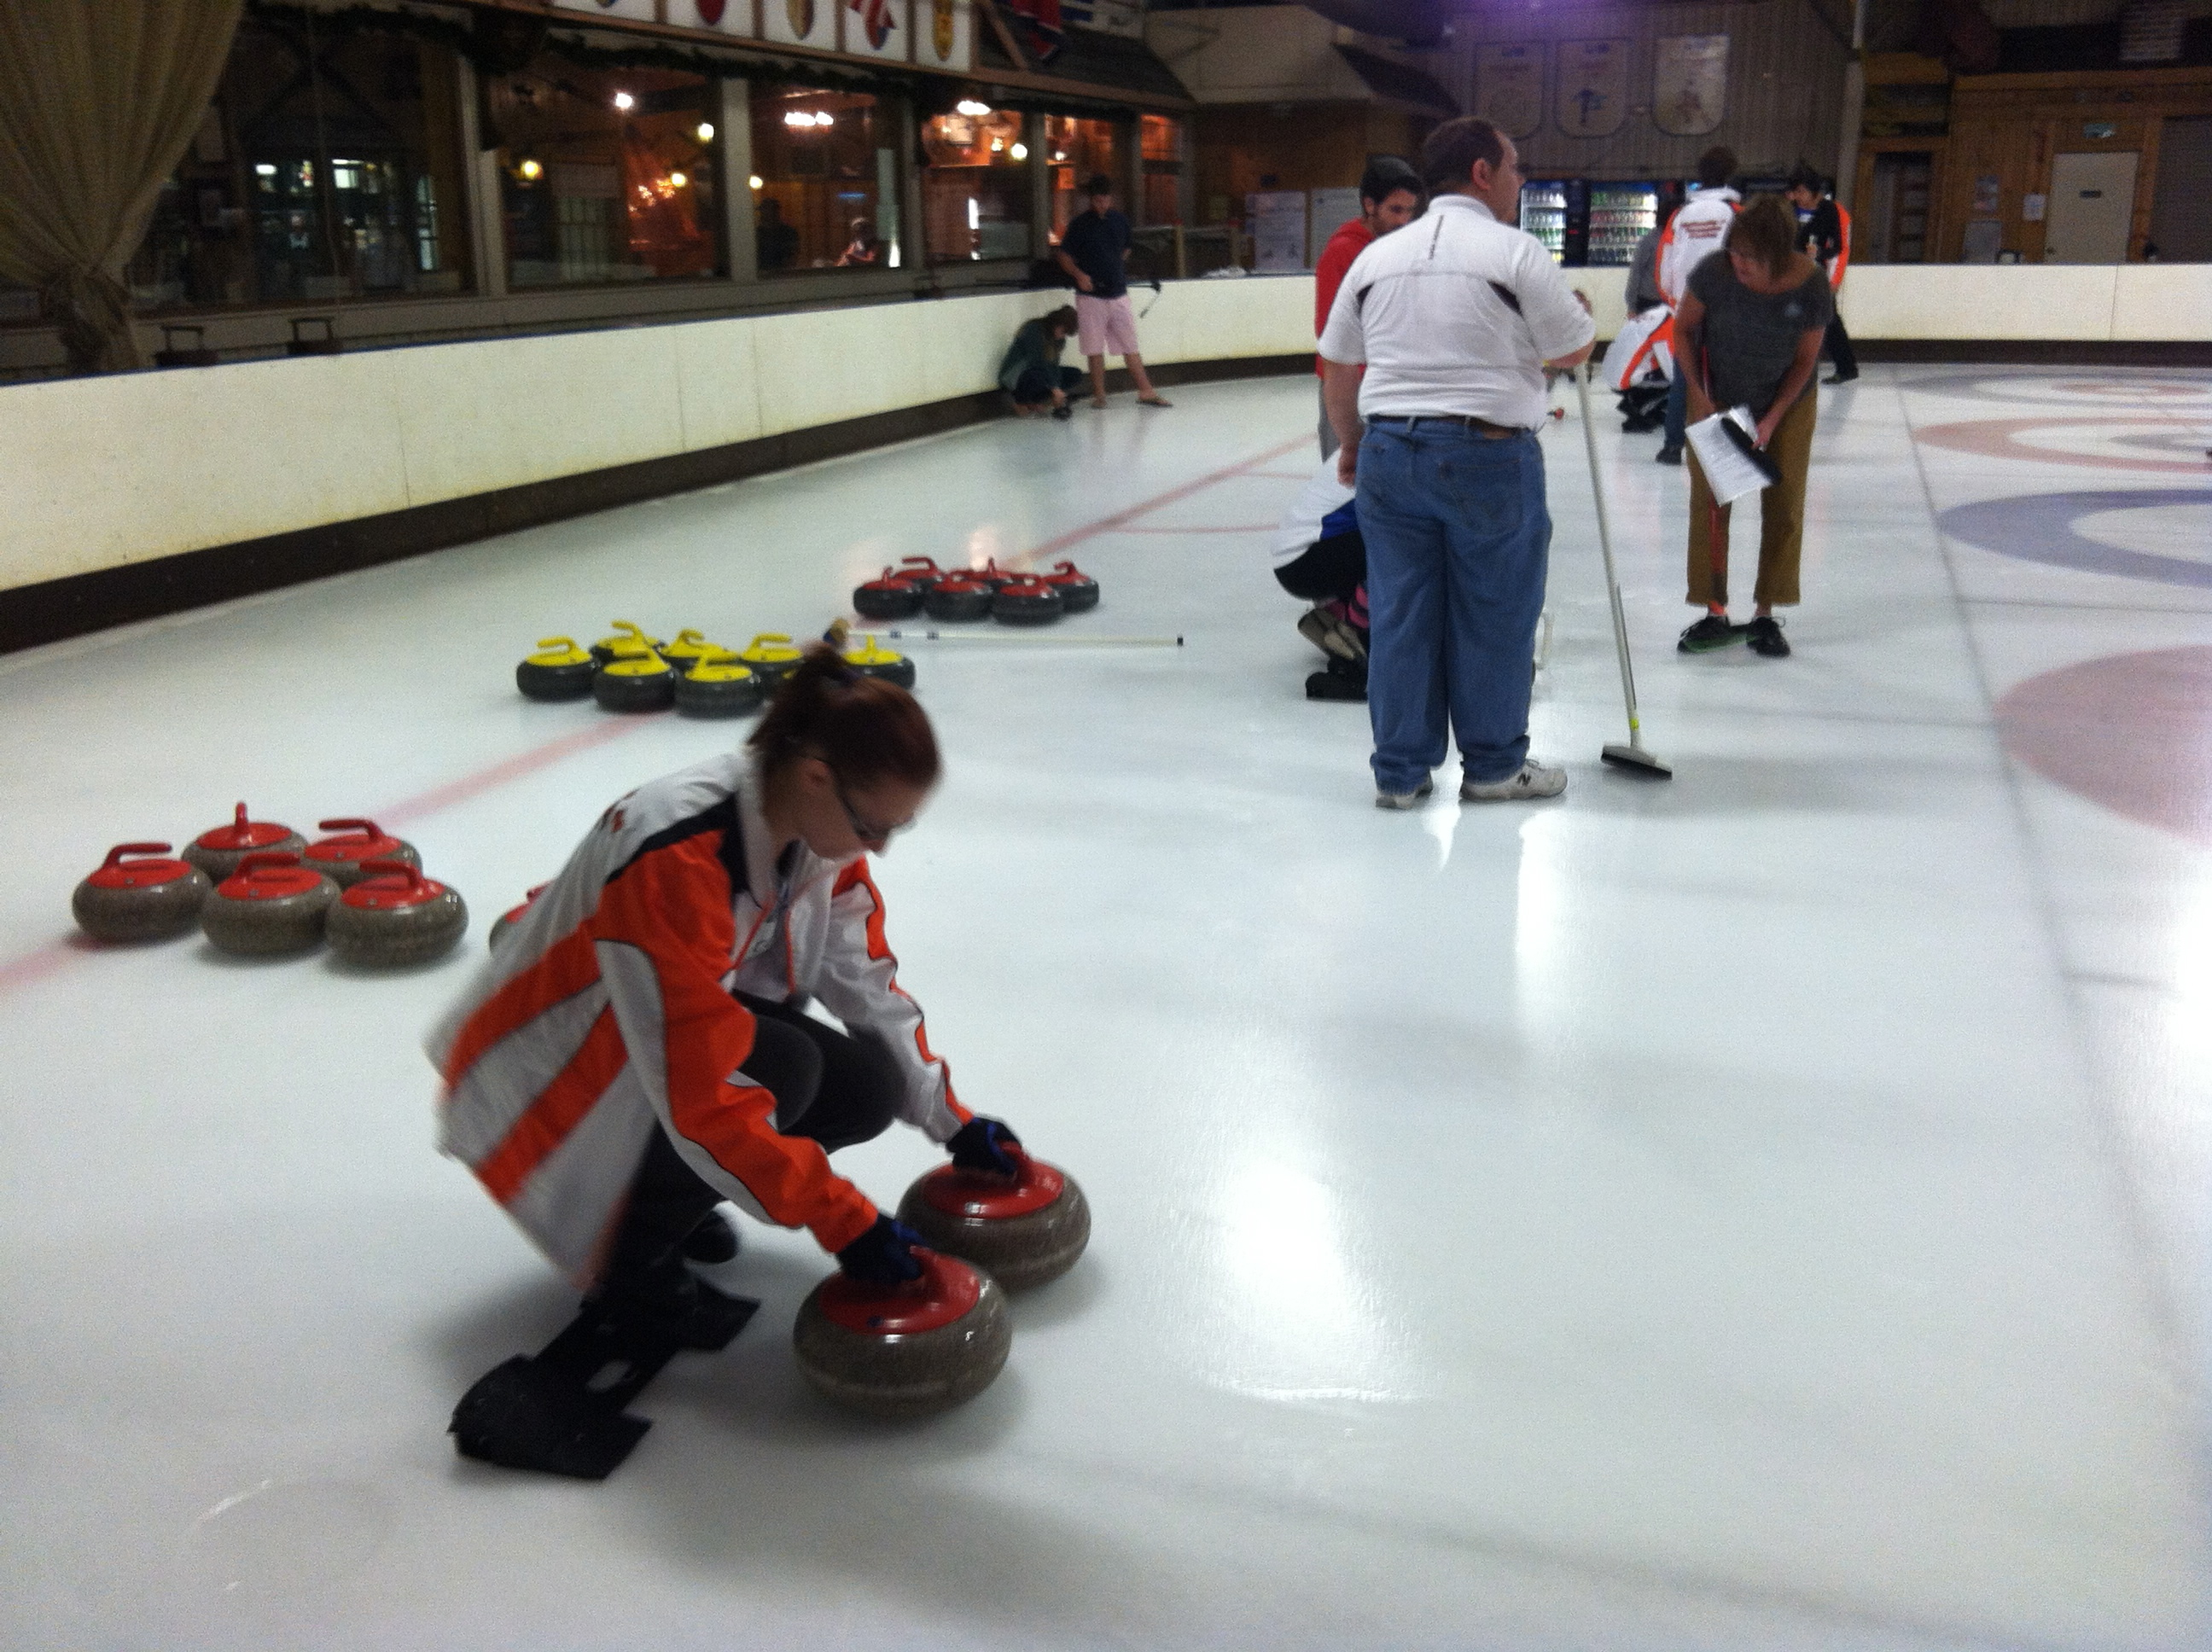 Carole sets up the curling stones.